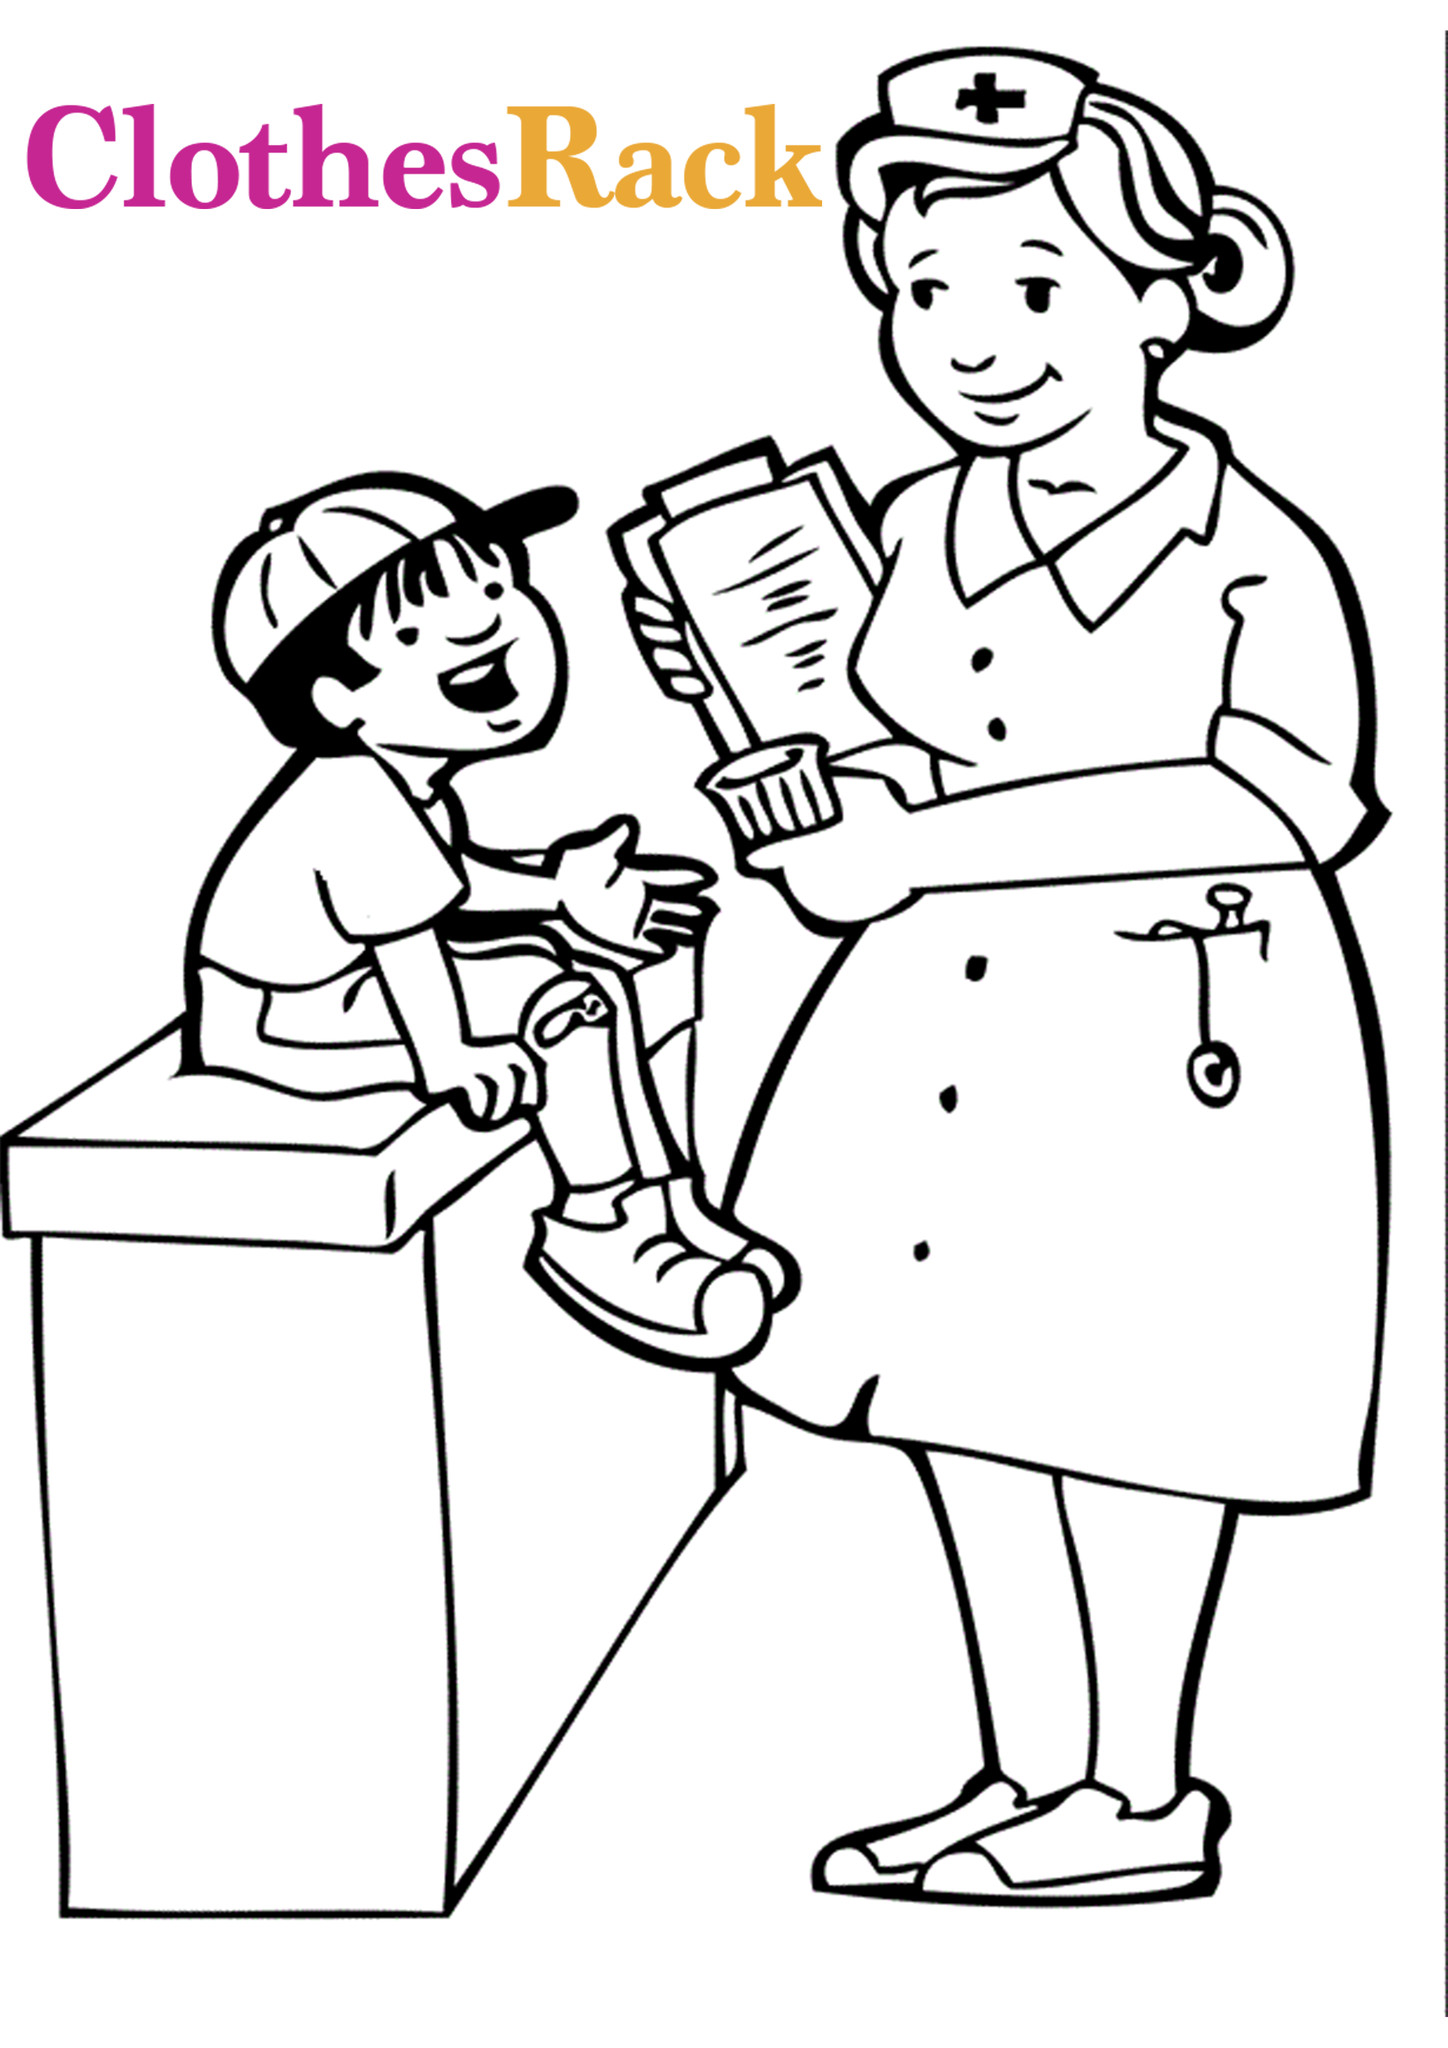 Medical Coloring Sheets For Kids  Free Medical Colouring Pages For Kids